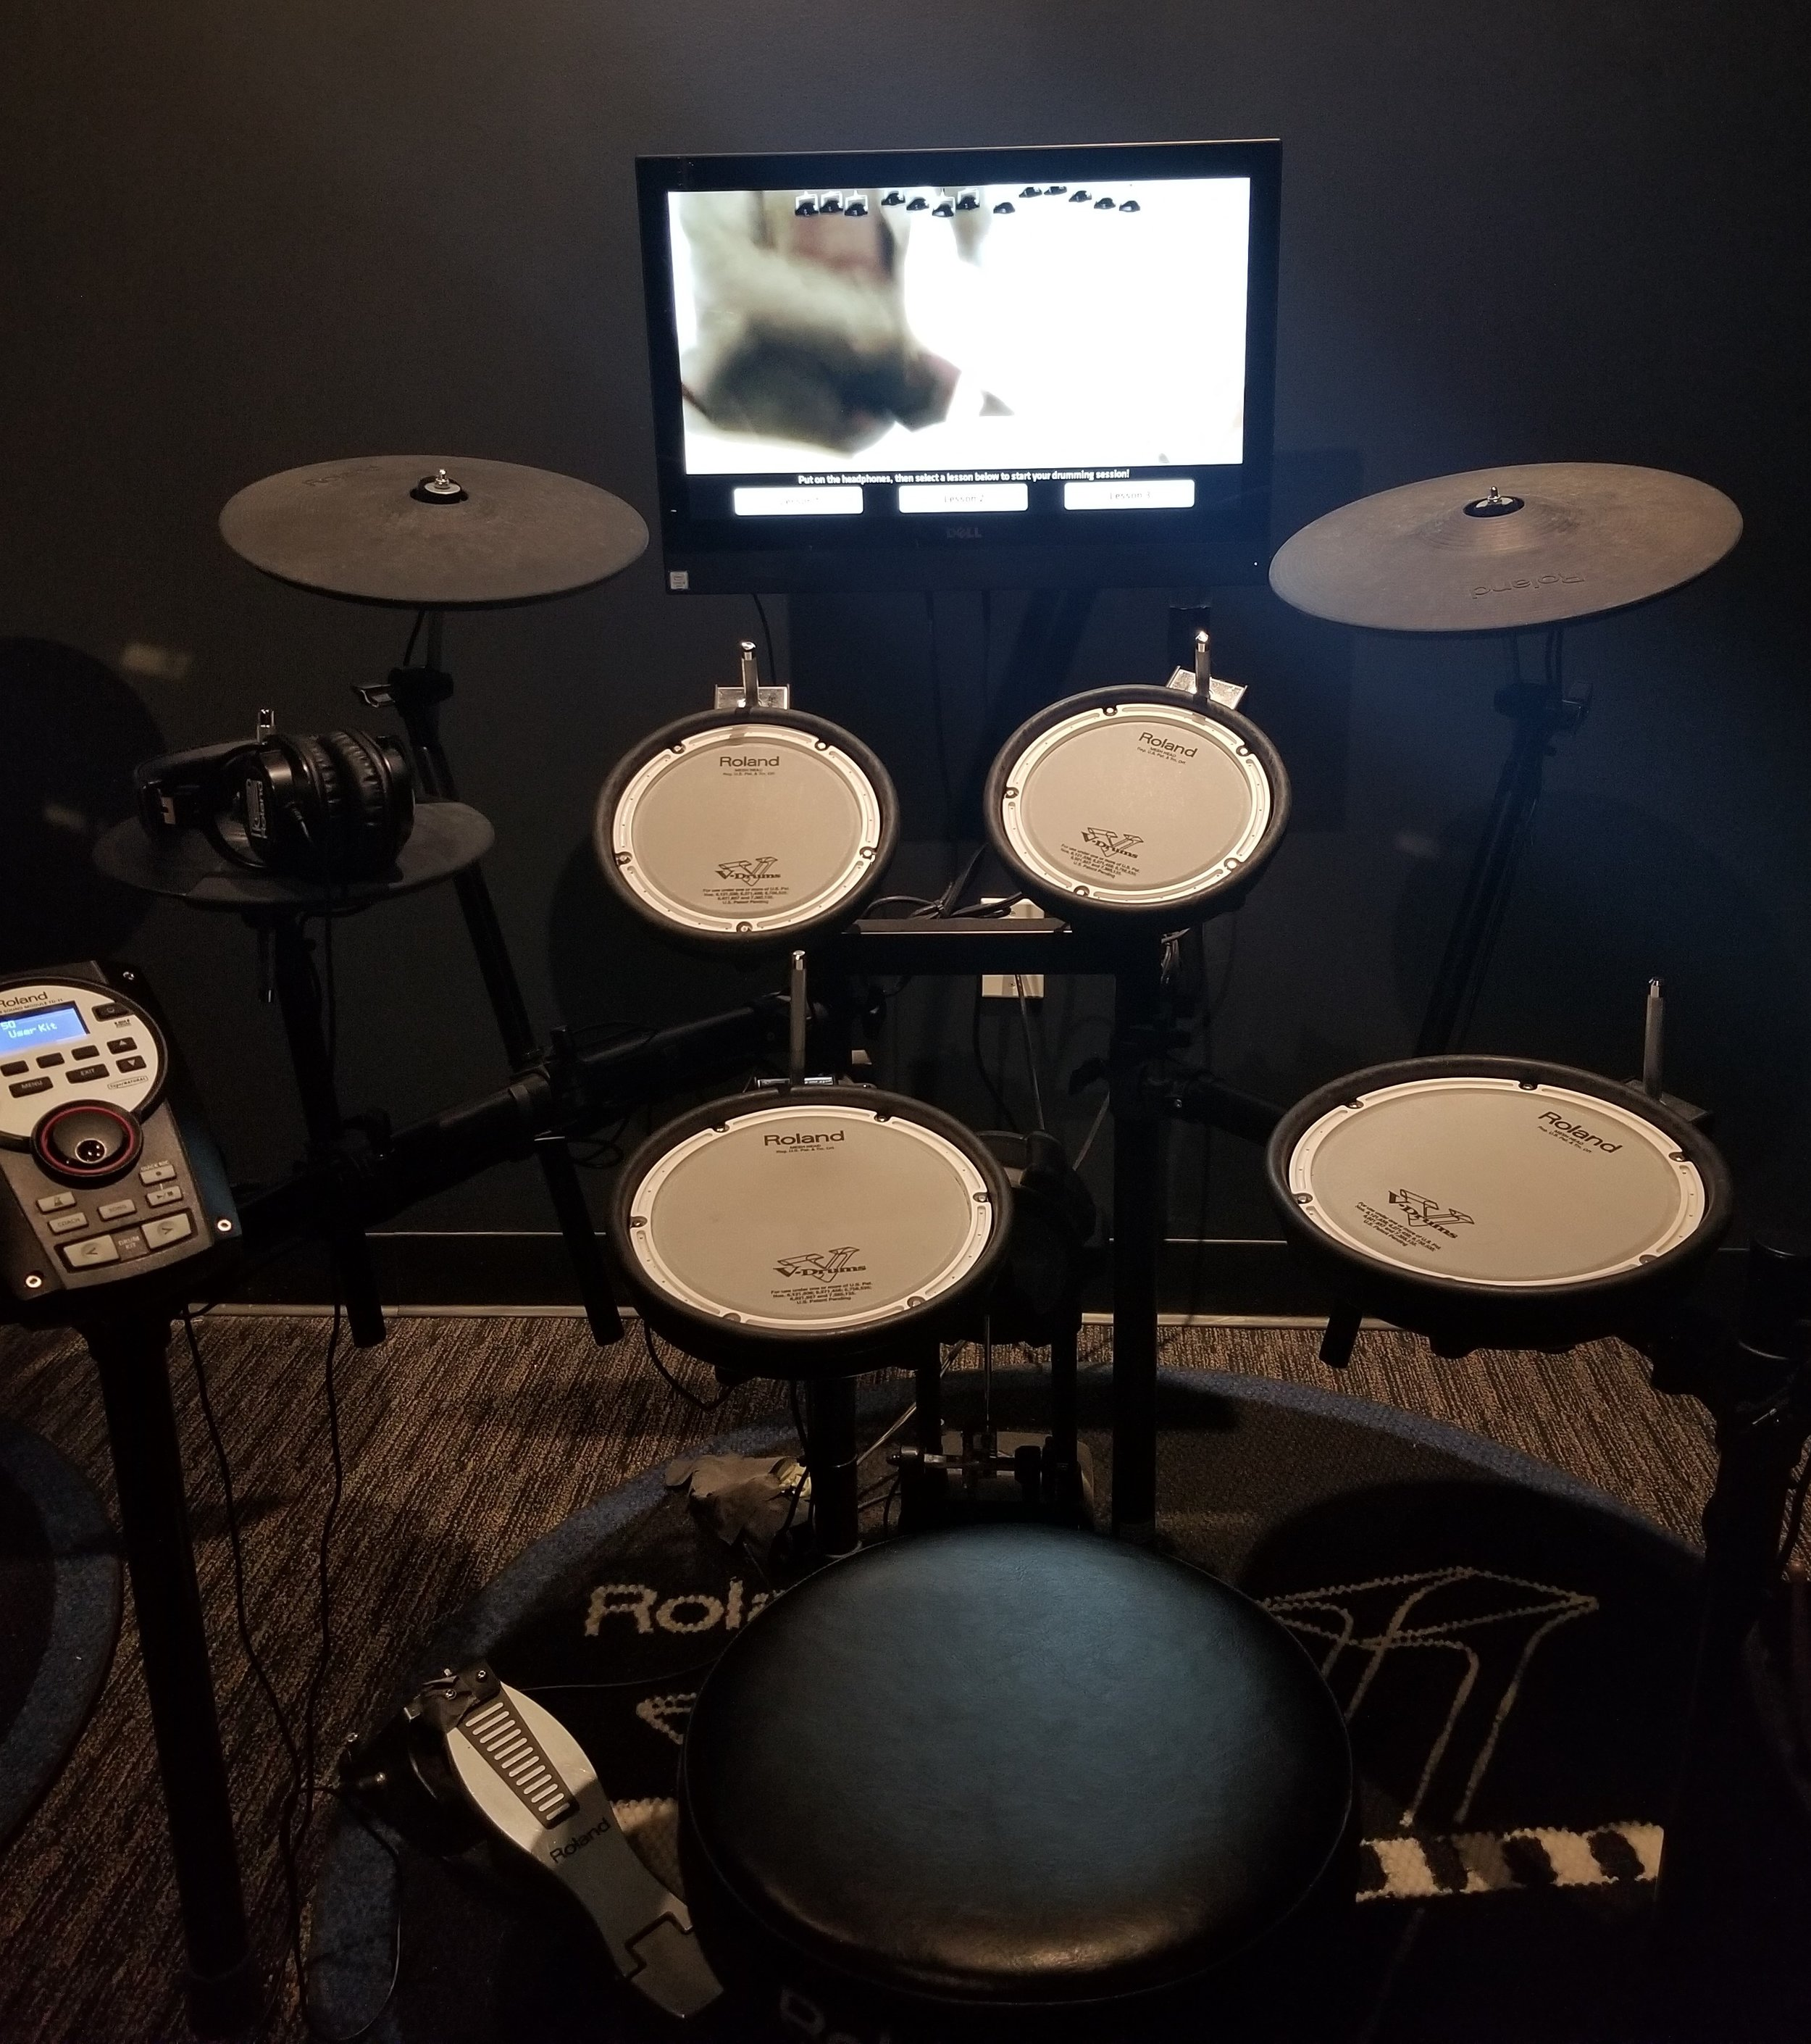 There were multiple rooms with various instruments. This was the drum room. There was an interactive screen that would teach you how to play the drums. It was fun!